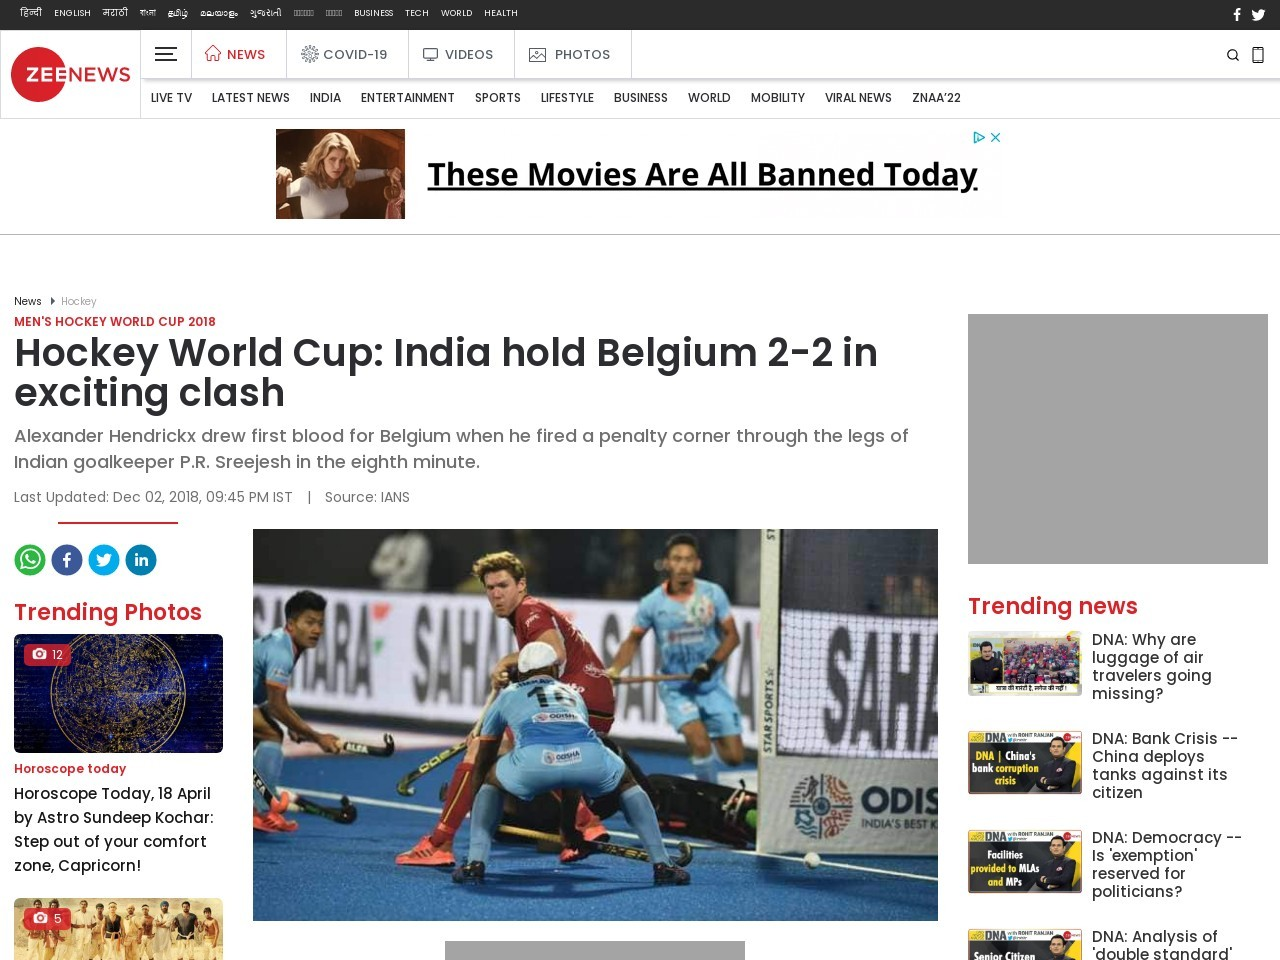 Hockey World Cup: India hold Belgium 2-2 in exciting clash